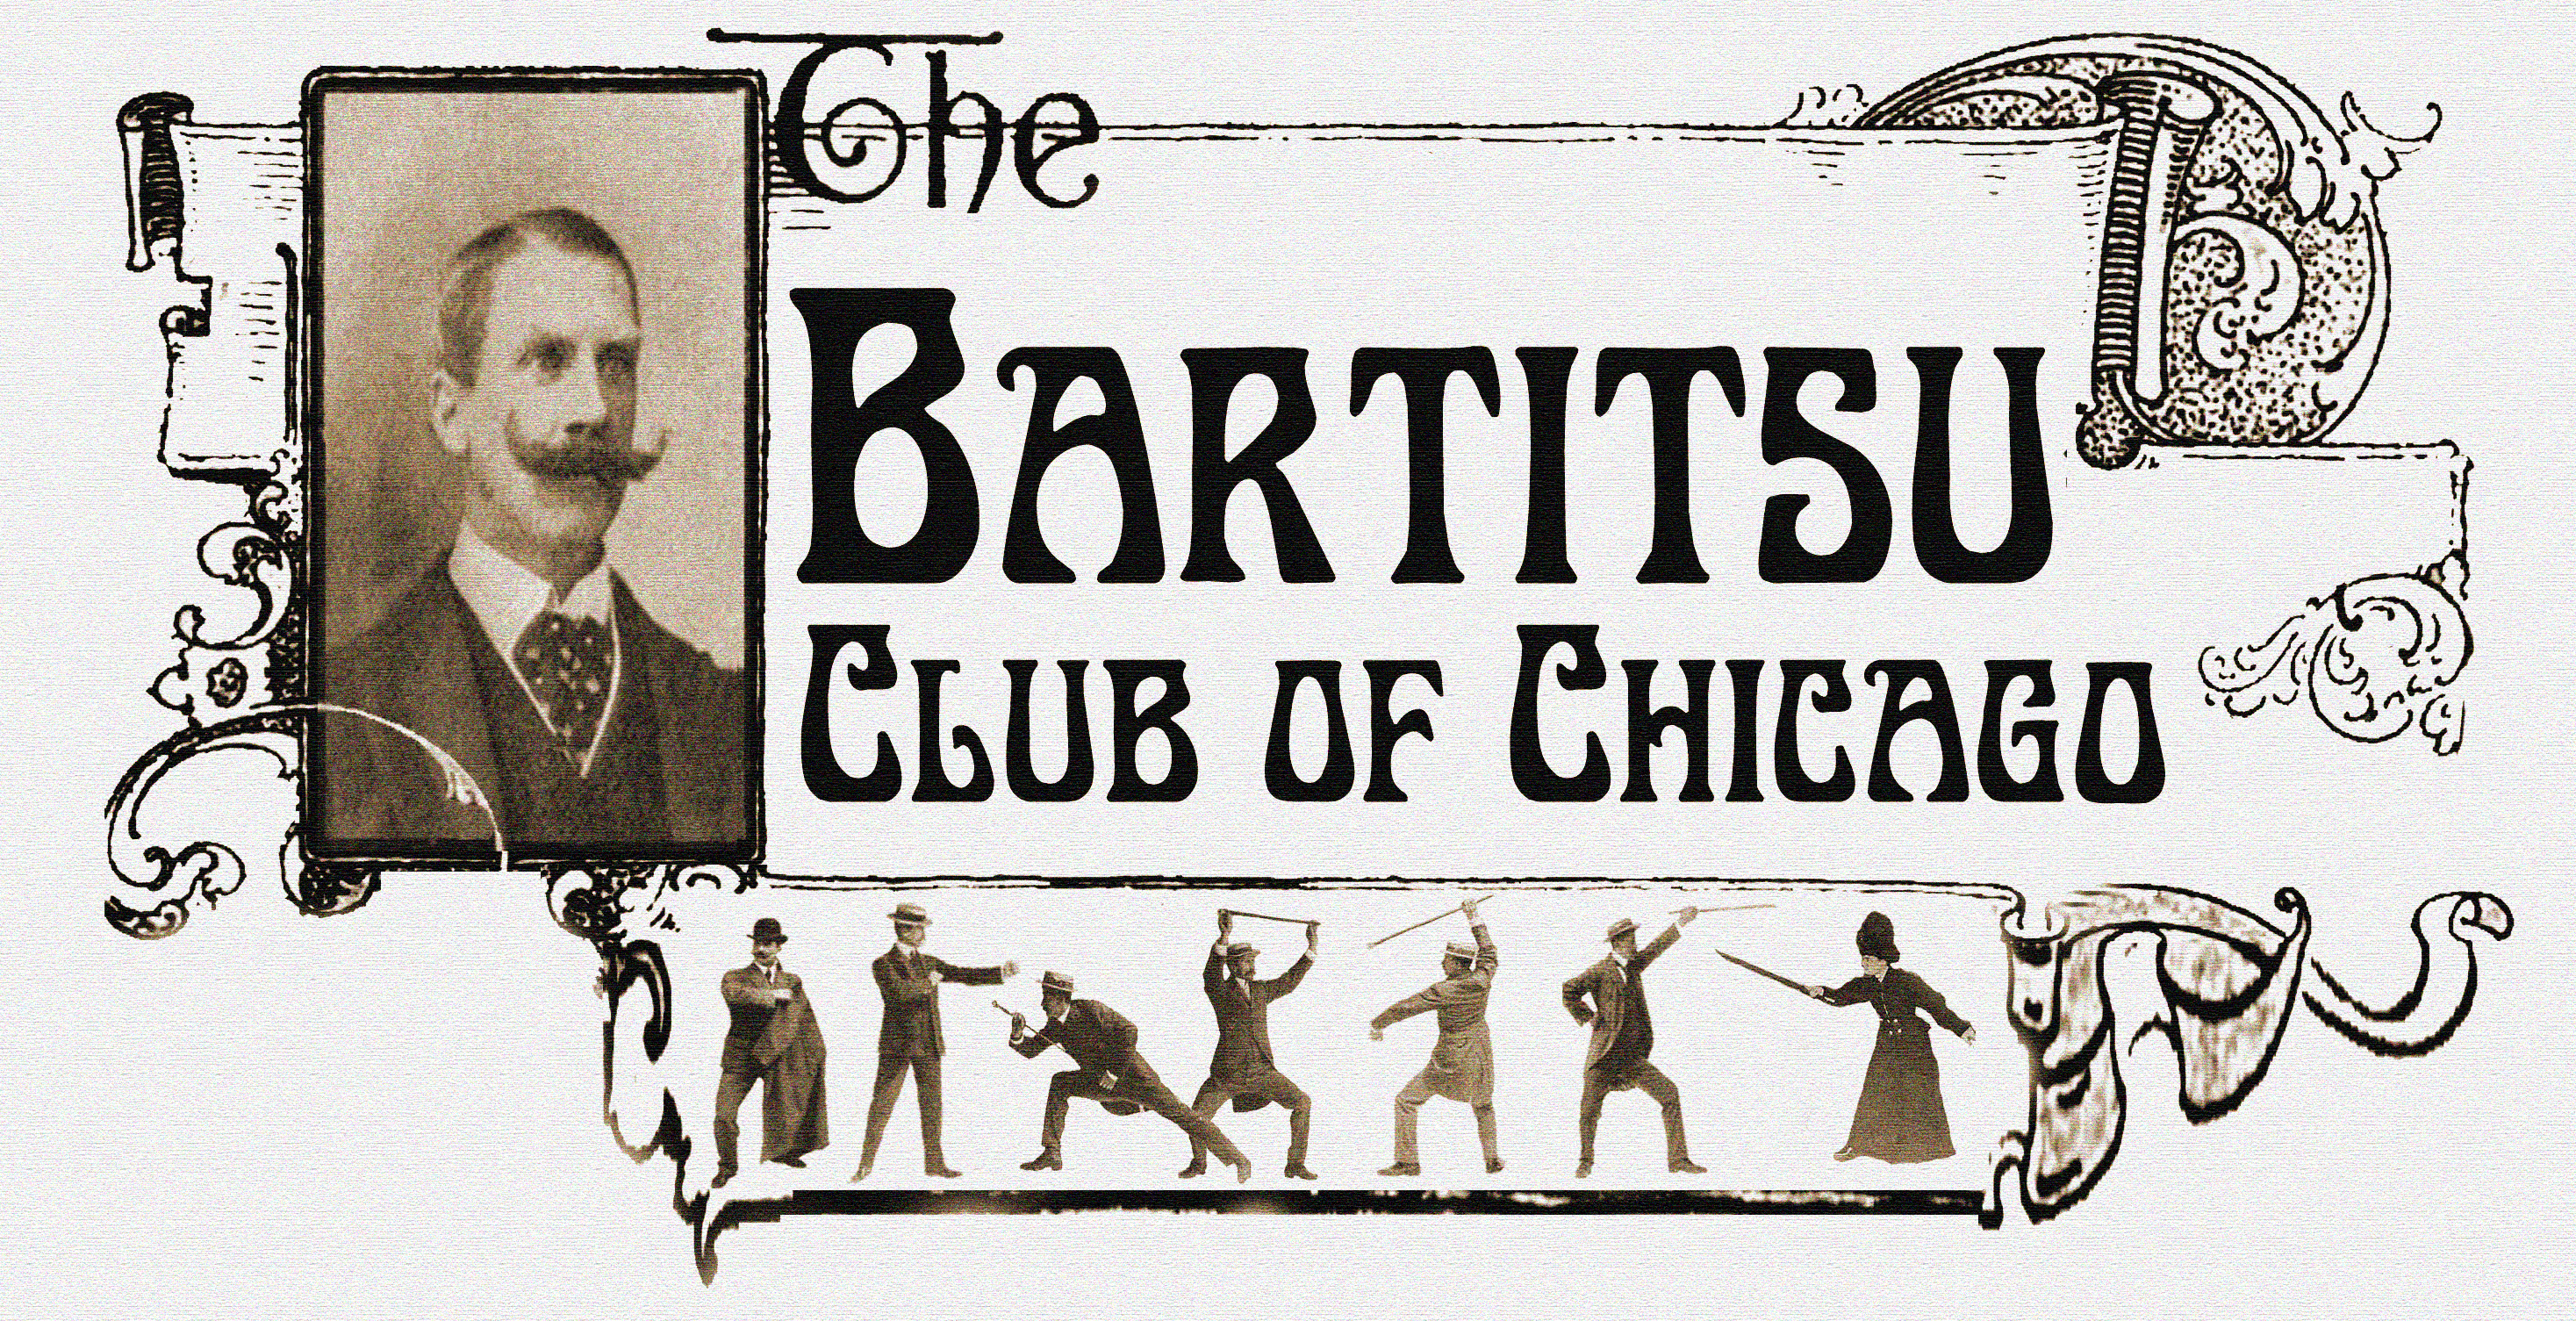 Bartitsu Club of Chicago logo